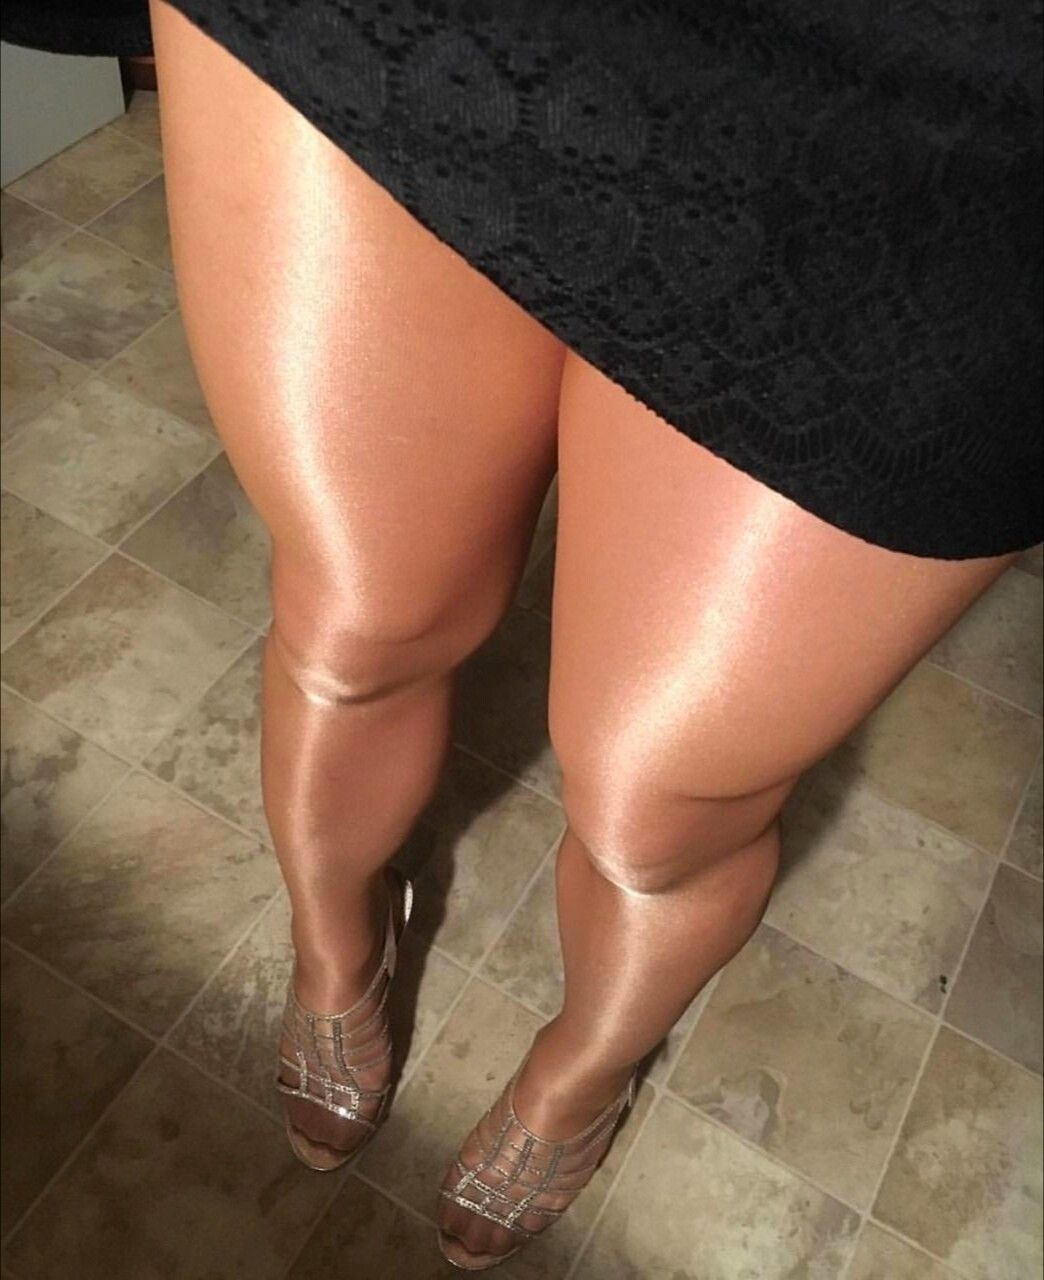 Do you wear shiny pantyhose